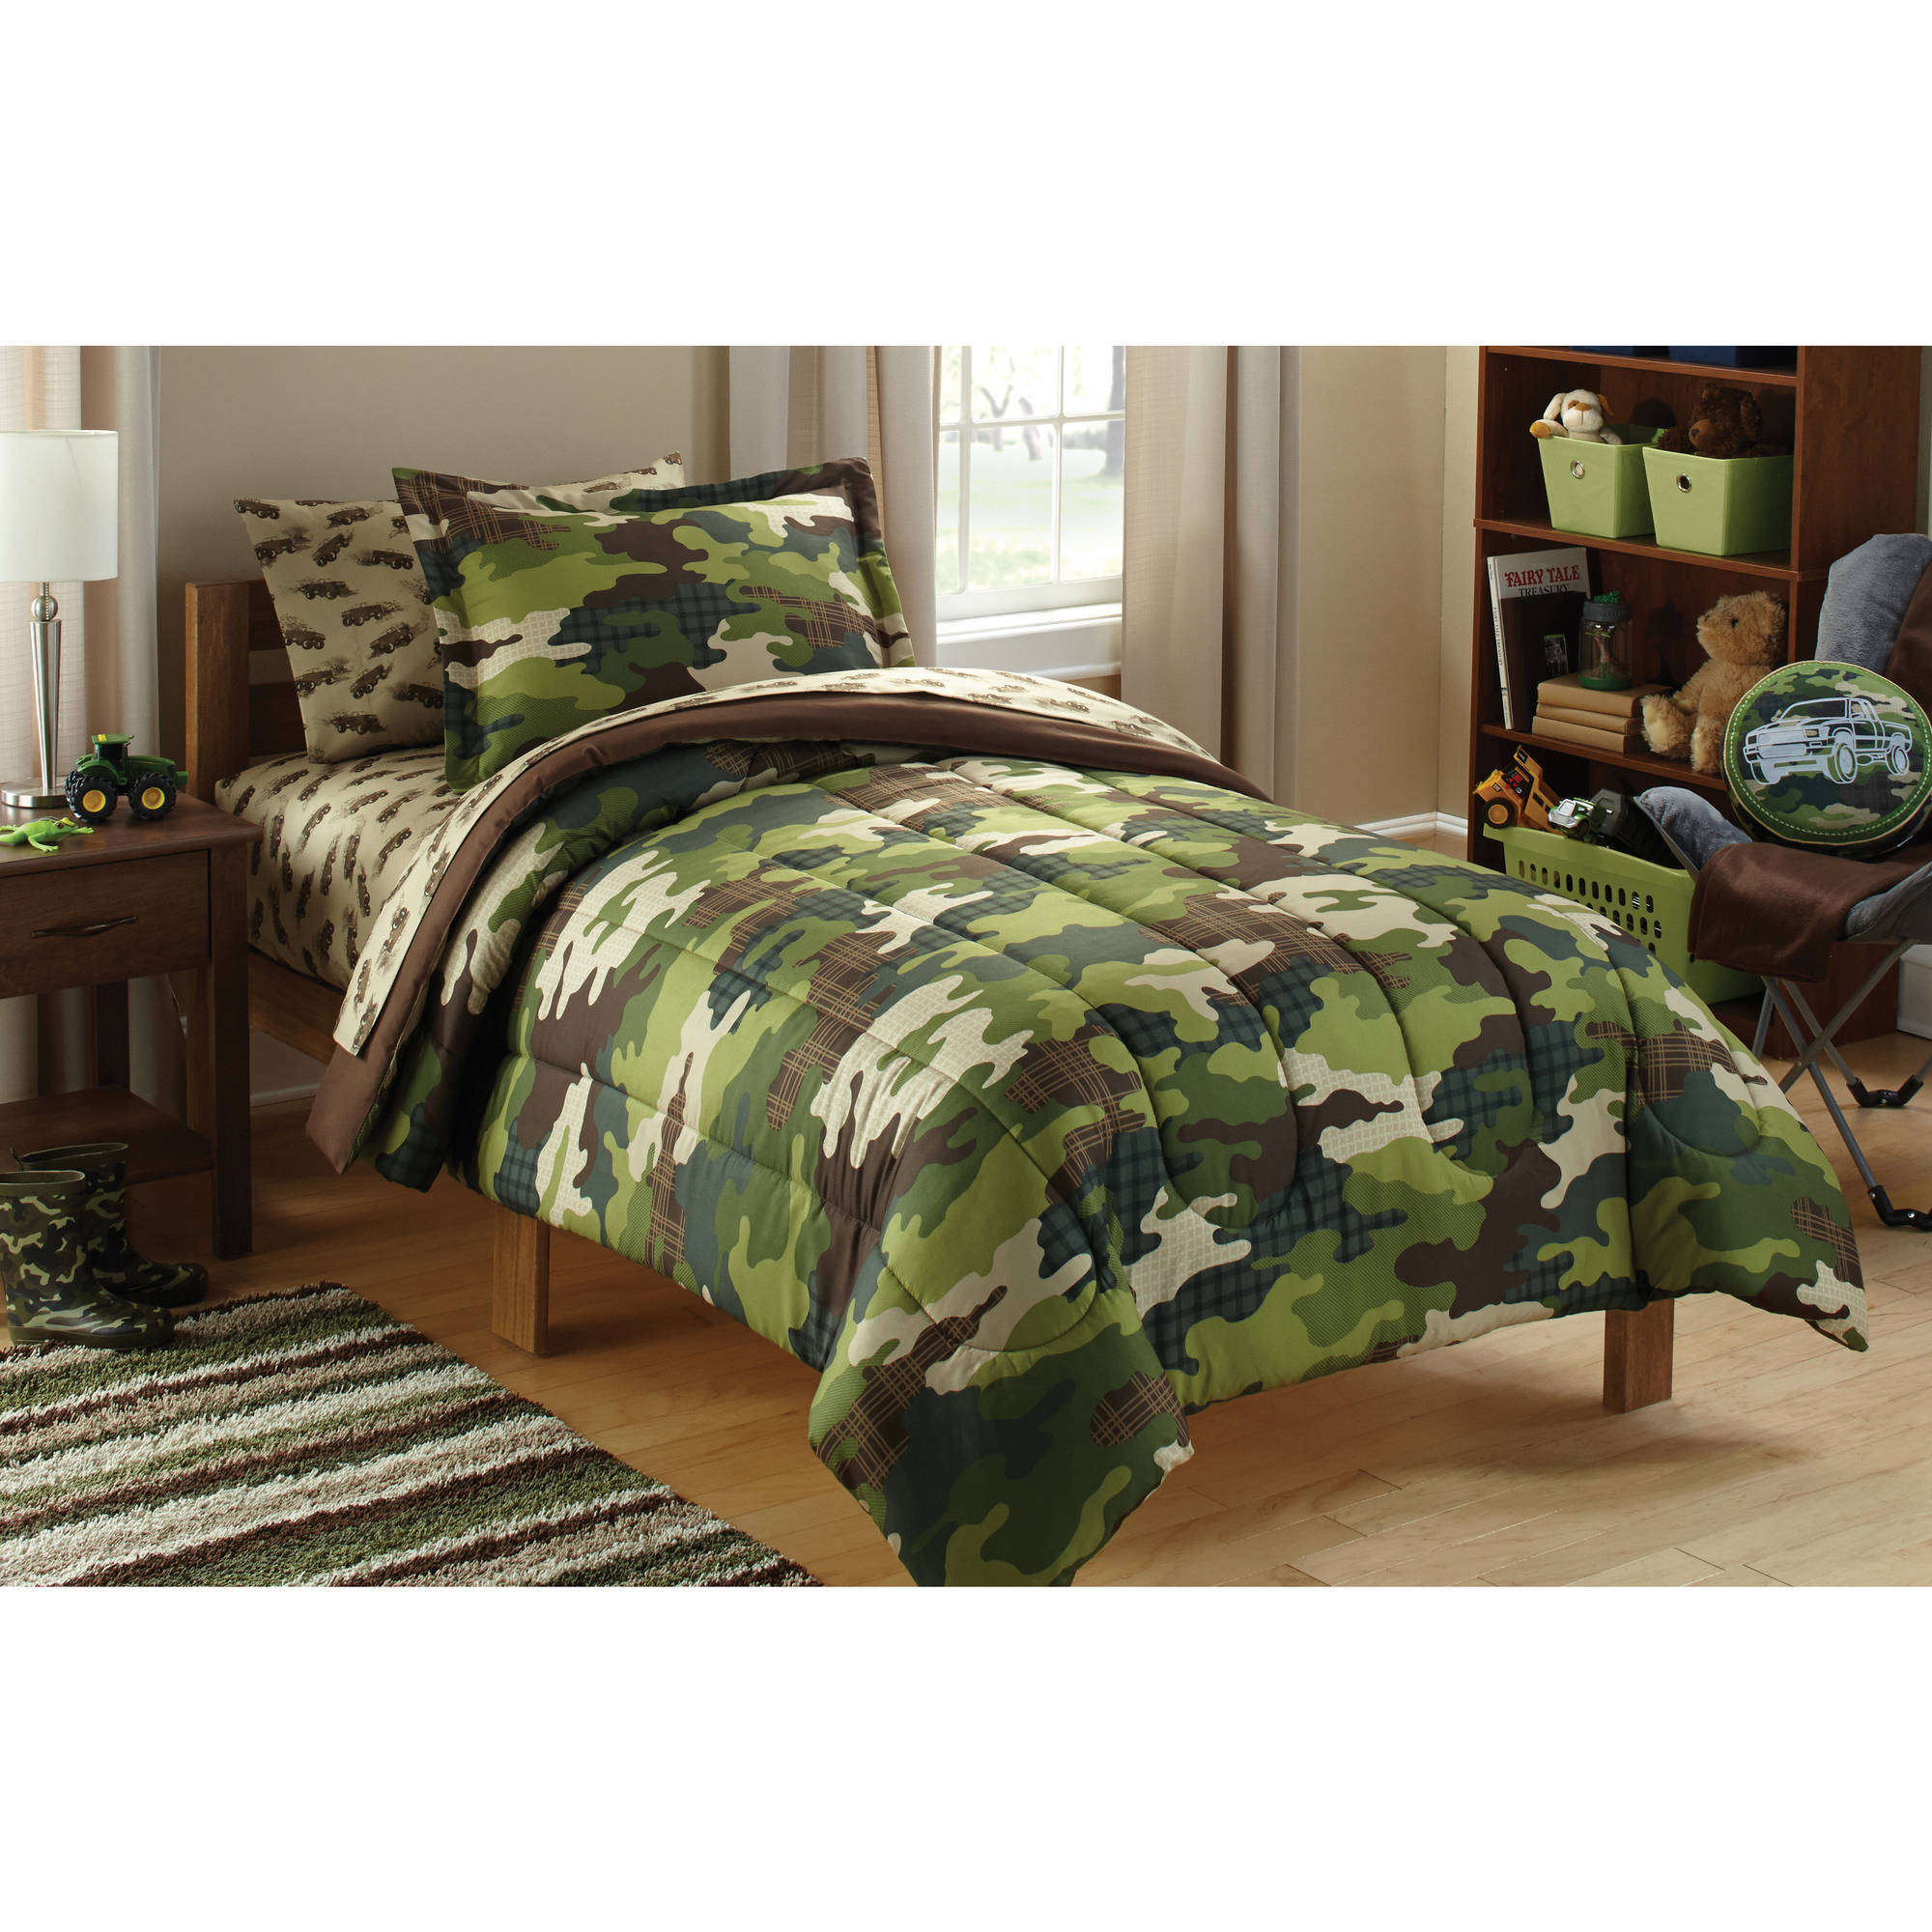 Mainstays Kids Camoflauge Coordinated Bed in a Bag Walmart